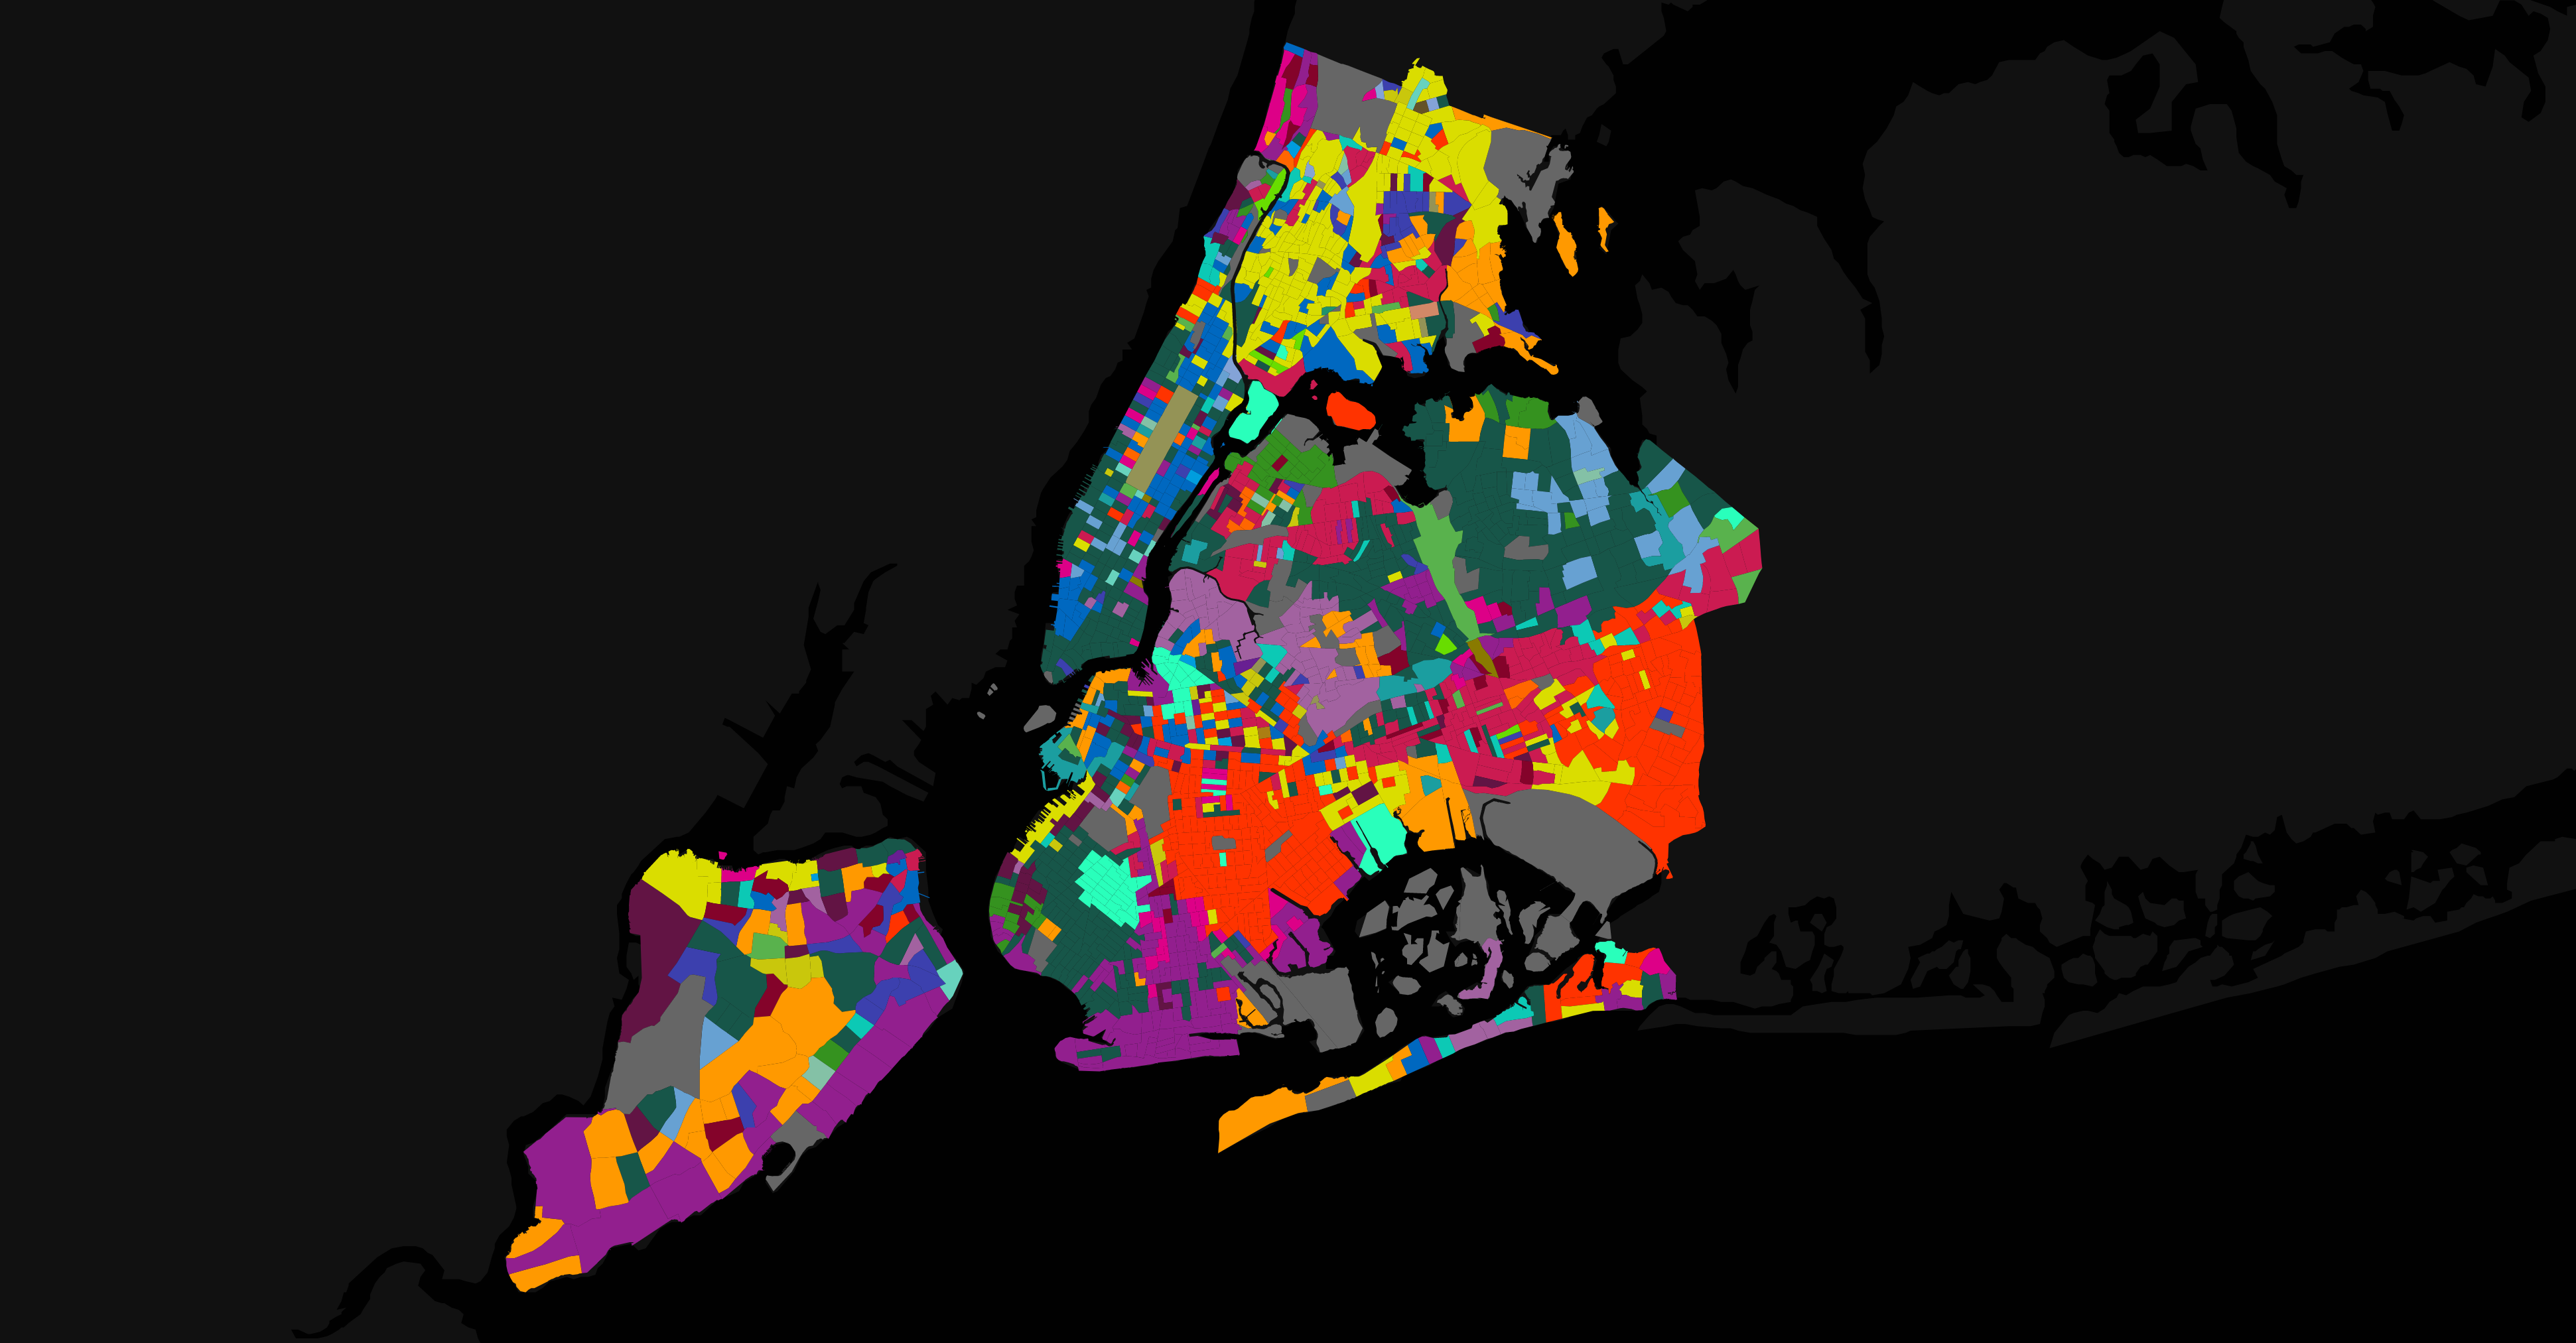 Map describing languages spoken in NYC.